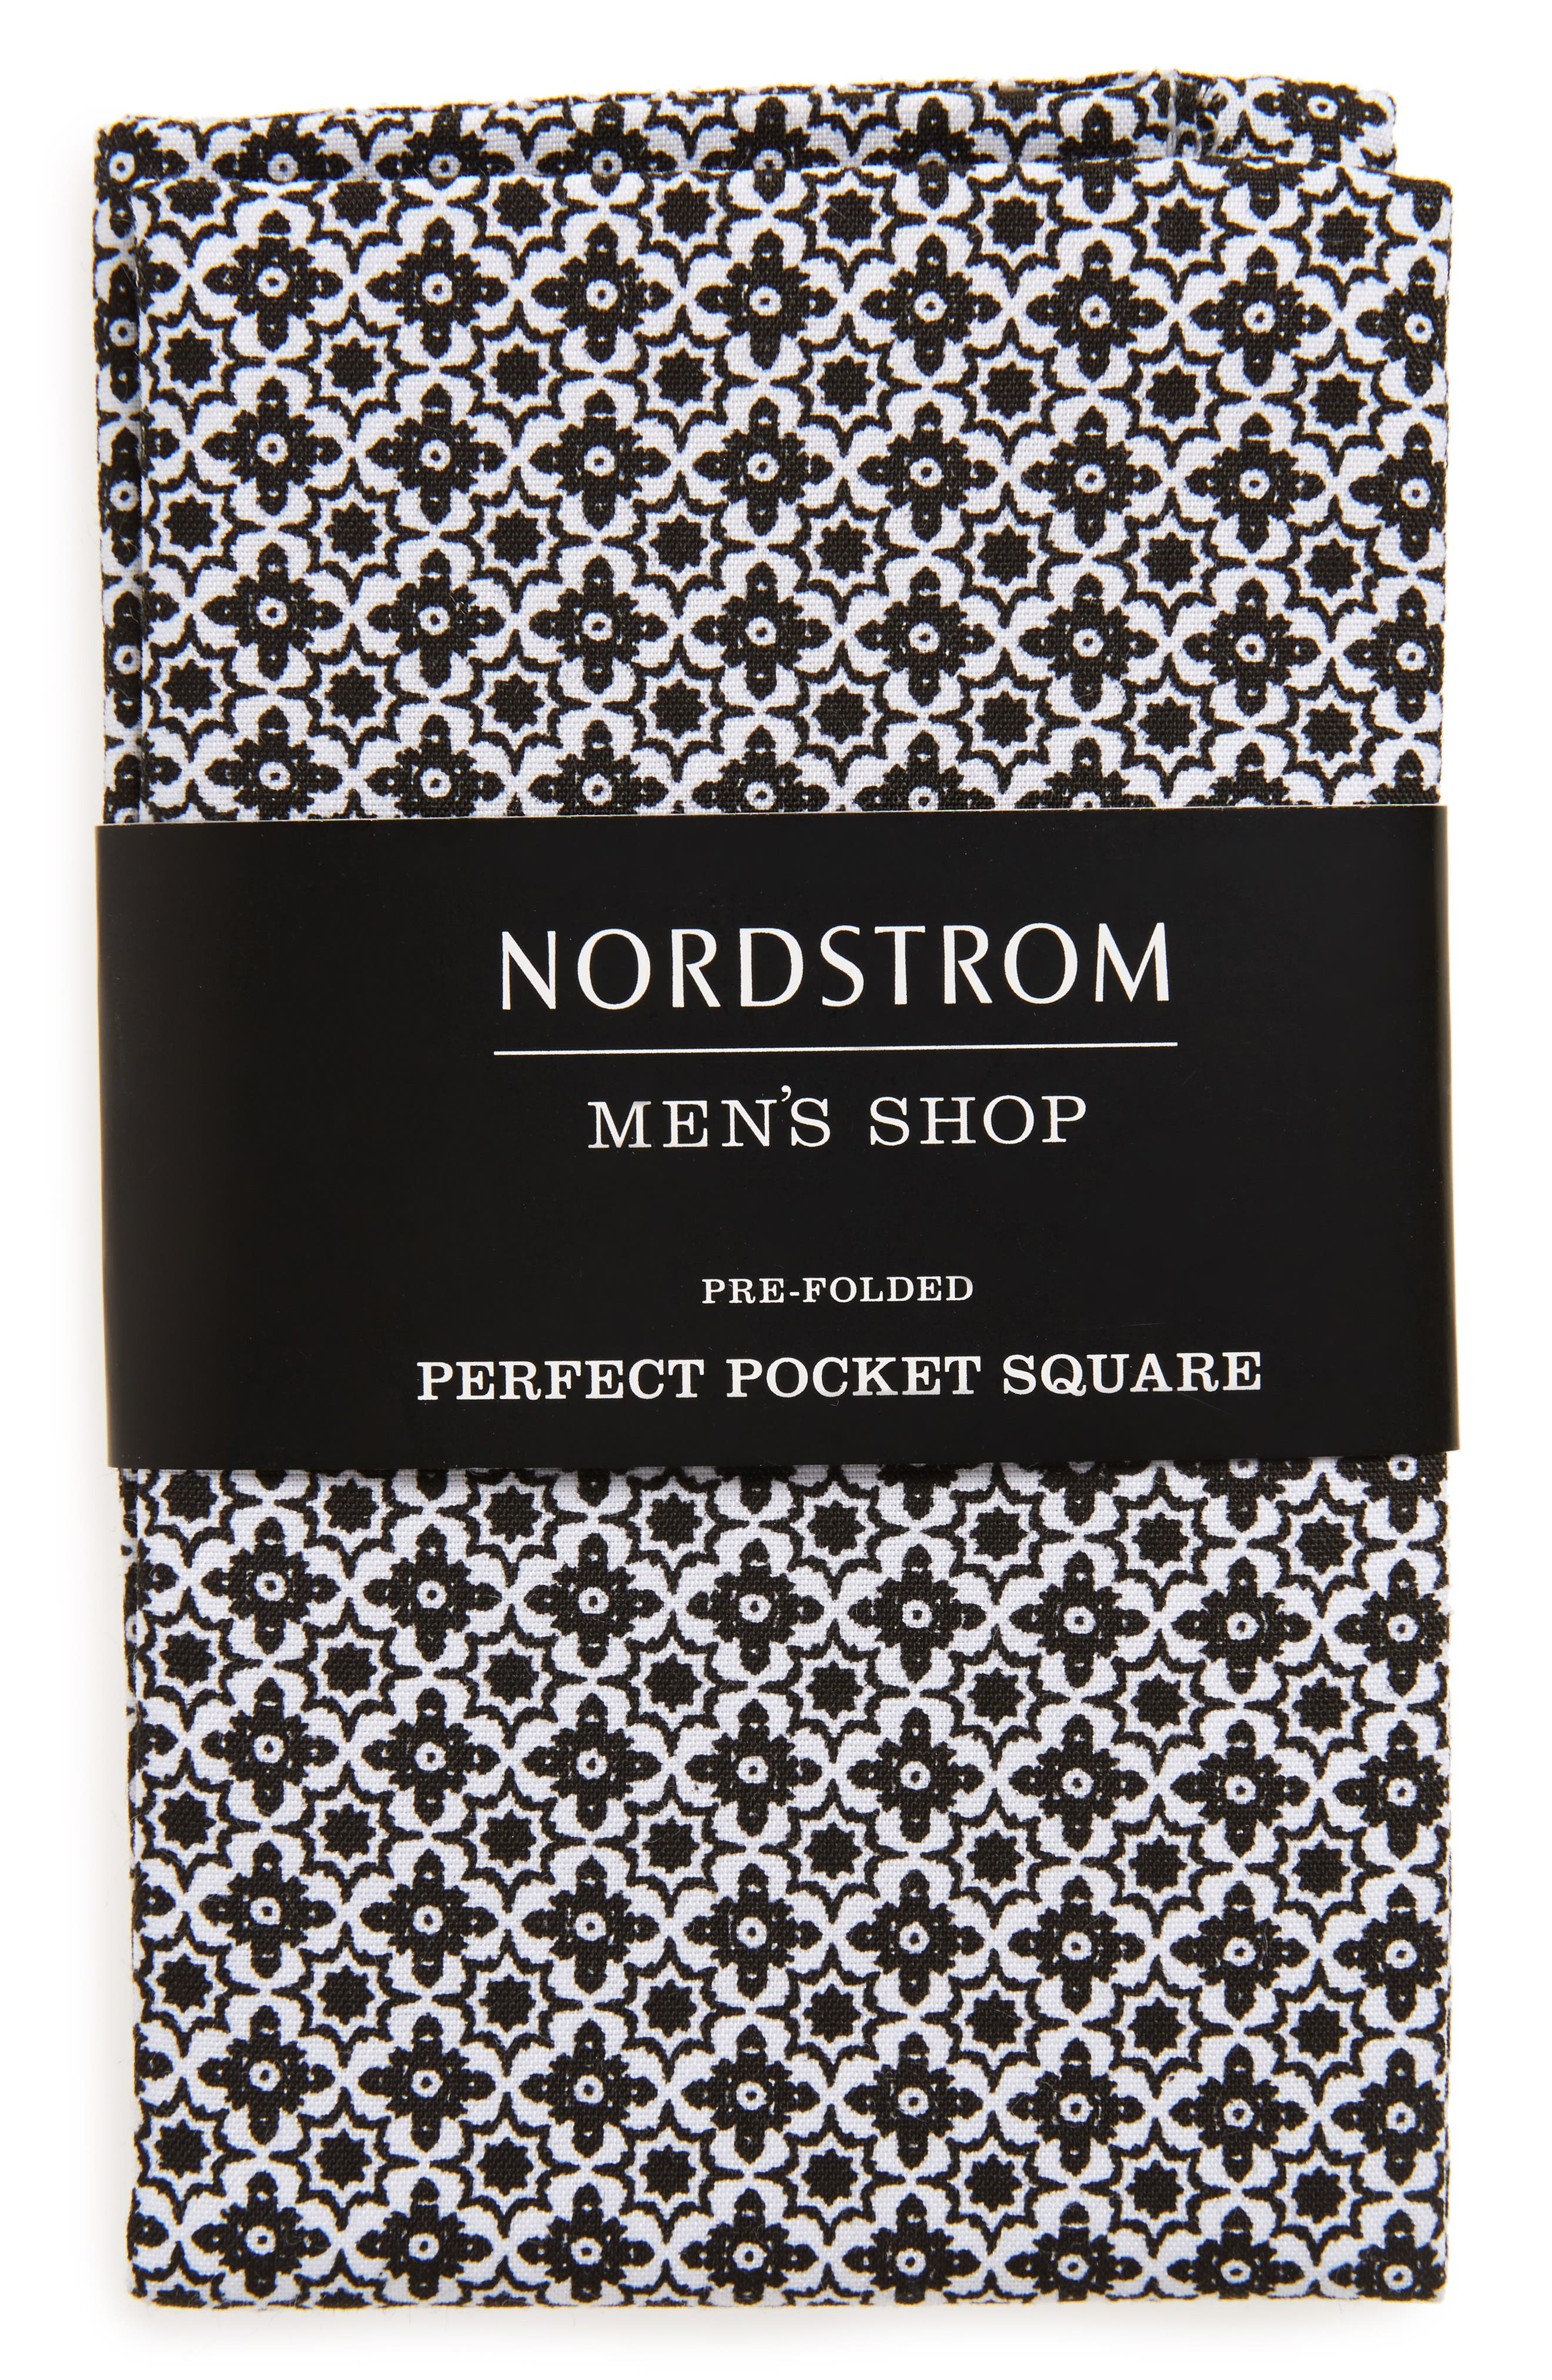 NORDSTROM MEN'S SHOP,                             The Perfect Pre-Folded Pocket Square,                             Main thumbnail 1, color,                             005